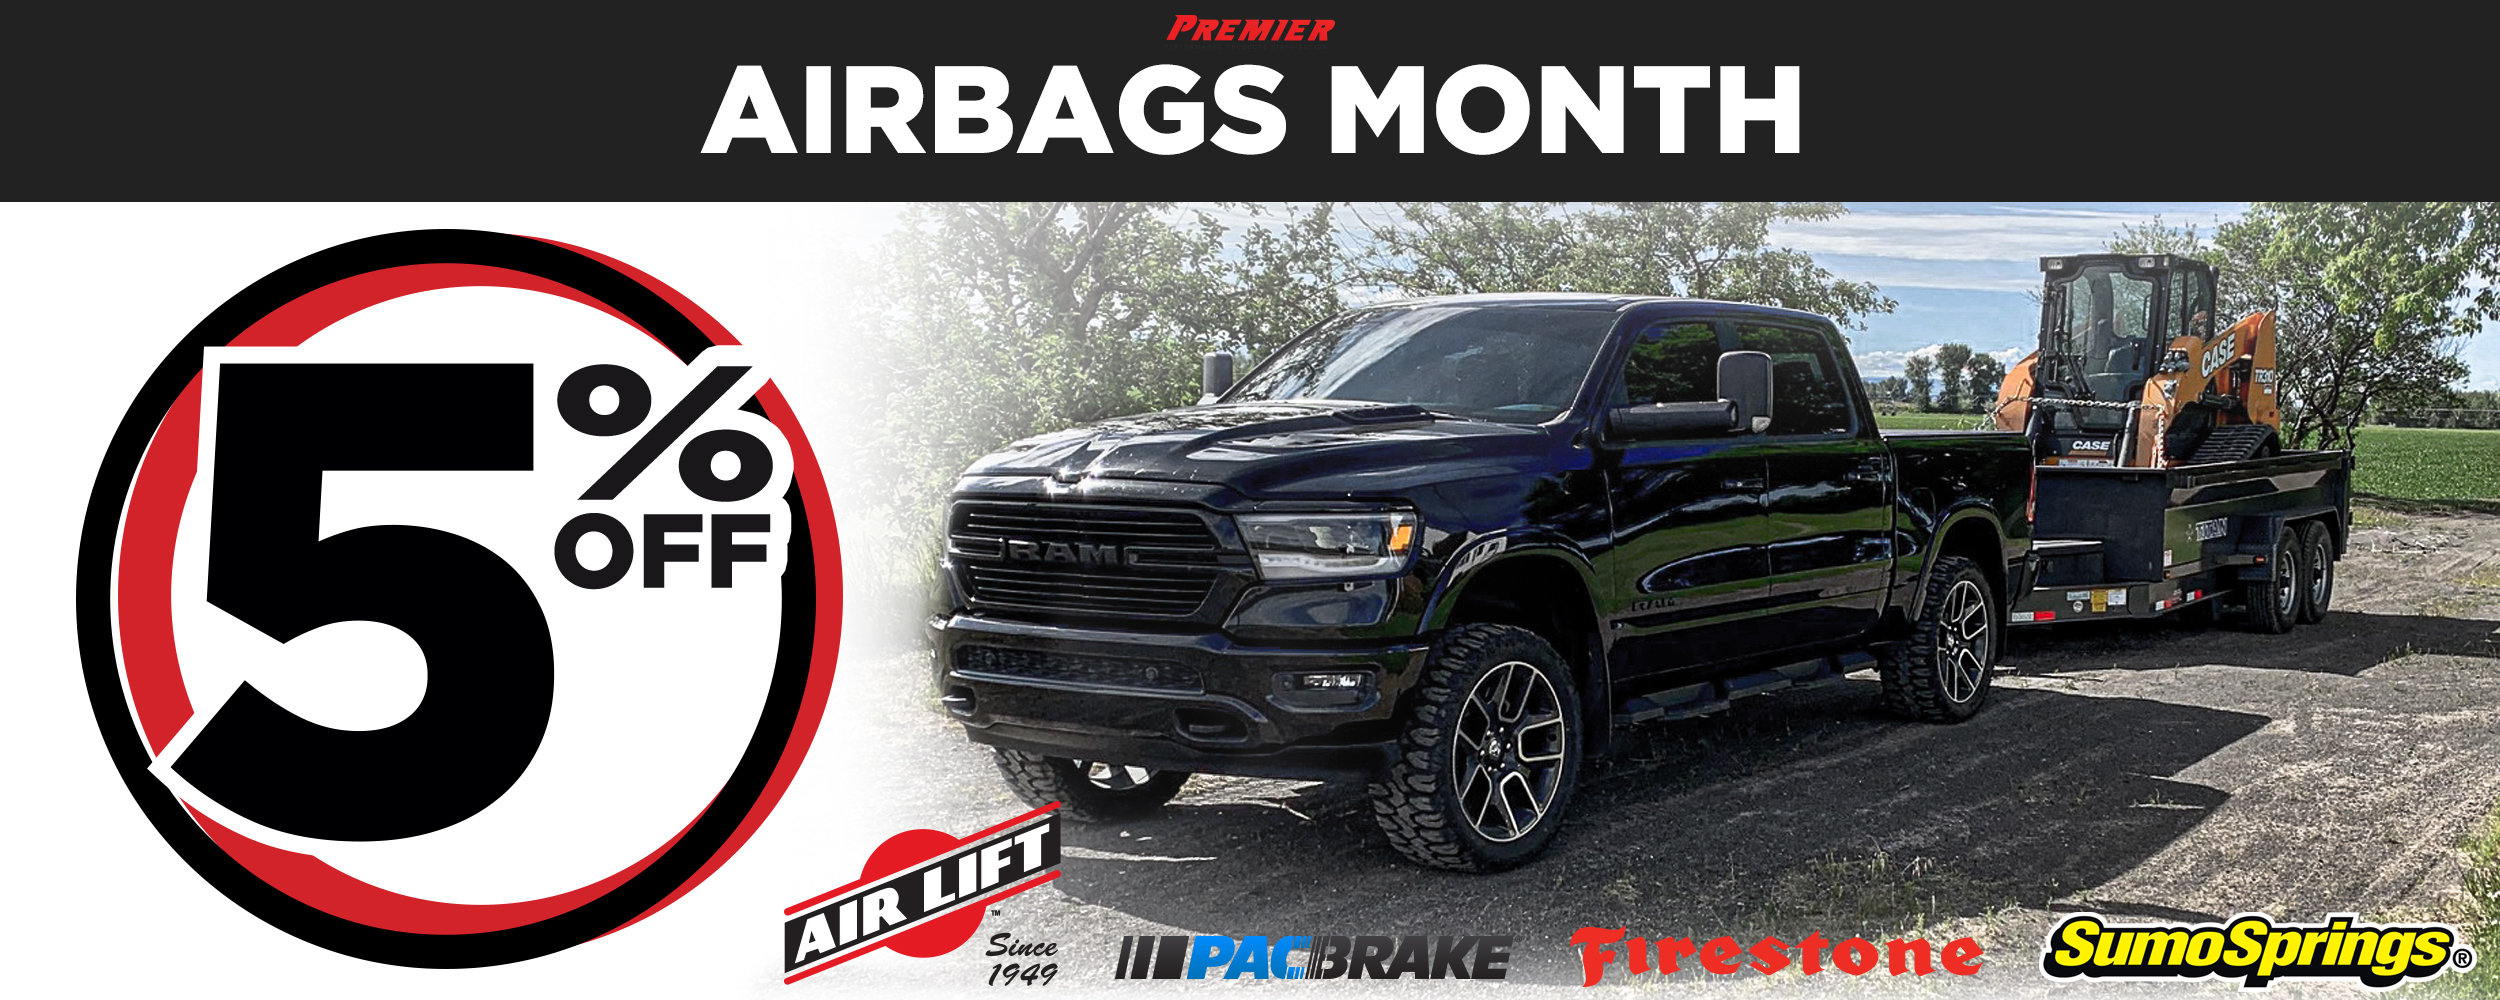 AirbagsMonth2